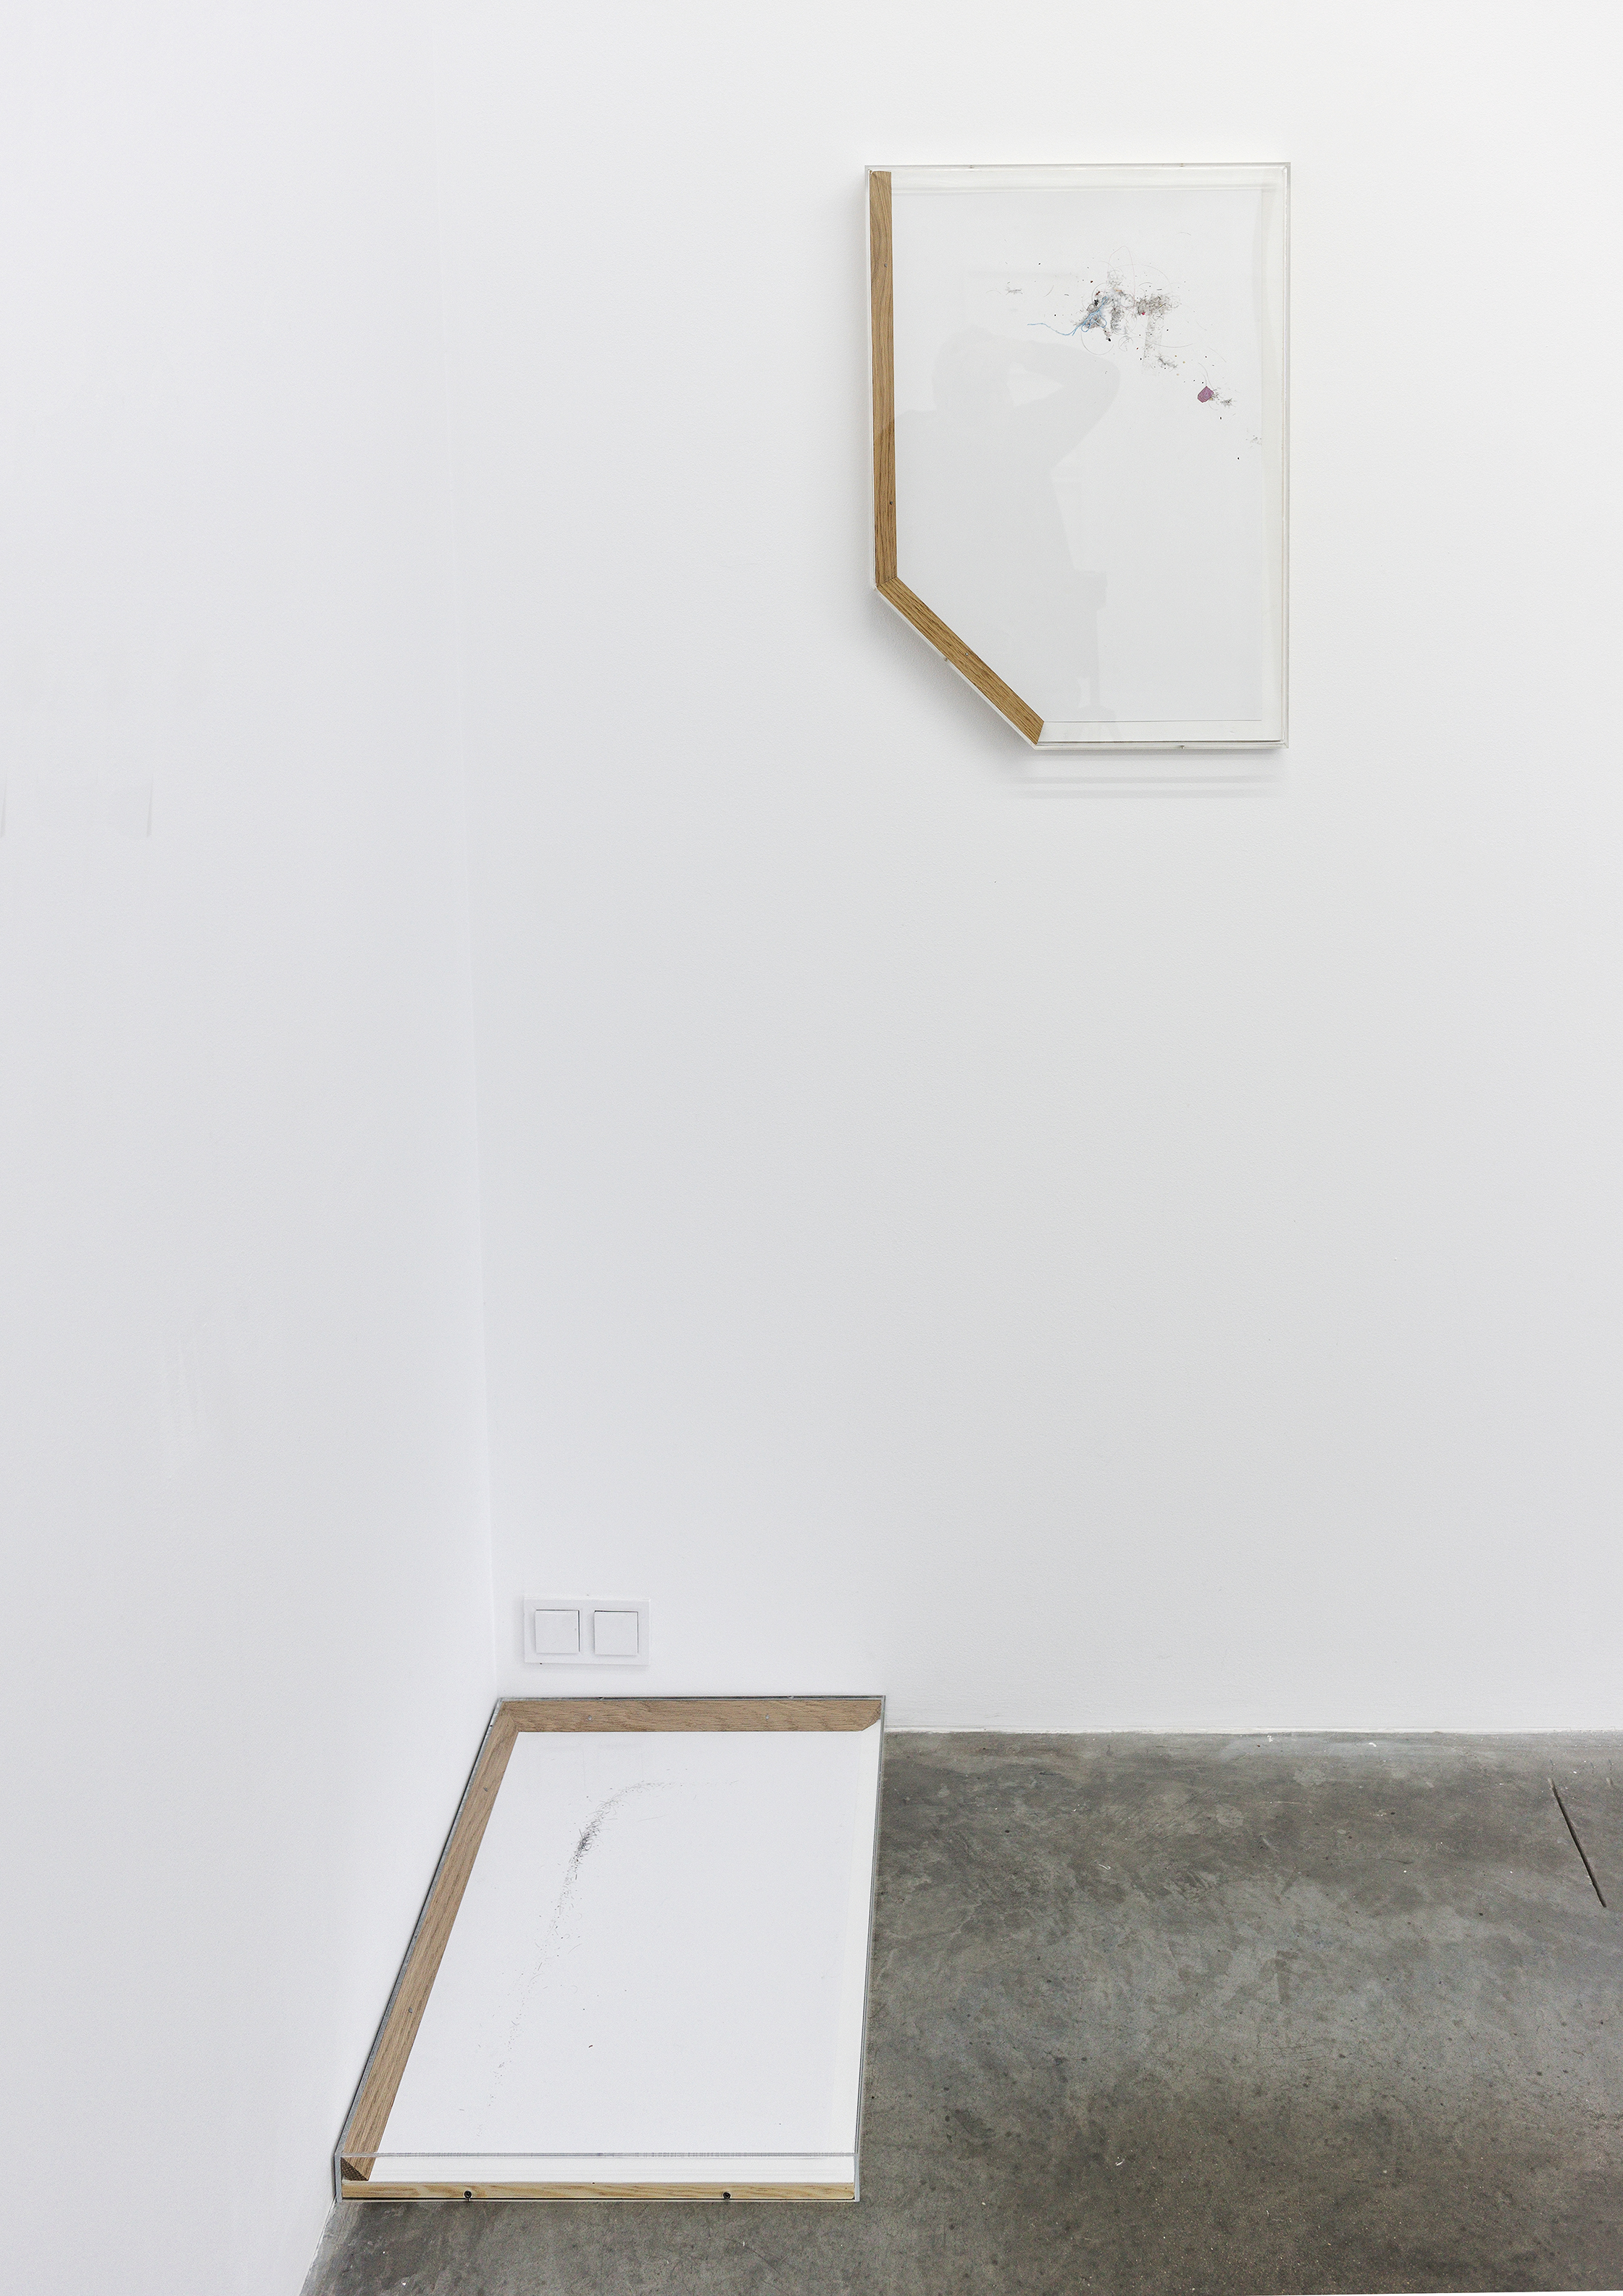 Michail Michailov, dust to dust, installation, Let them draw II (drawing and withdrawing), Sariev Contemporary, Plovdiv 2017